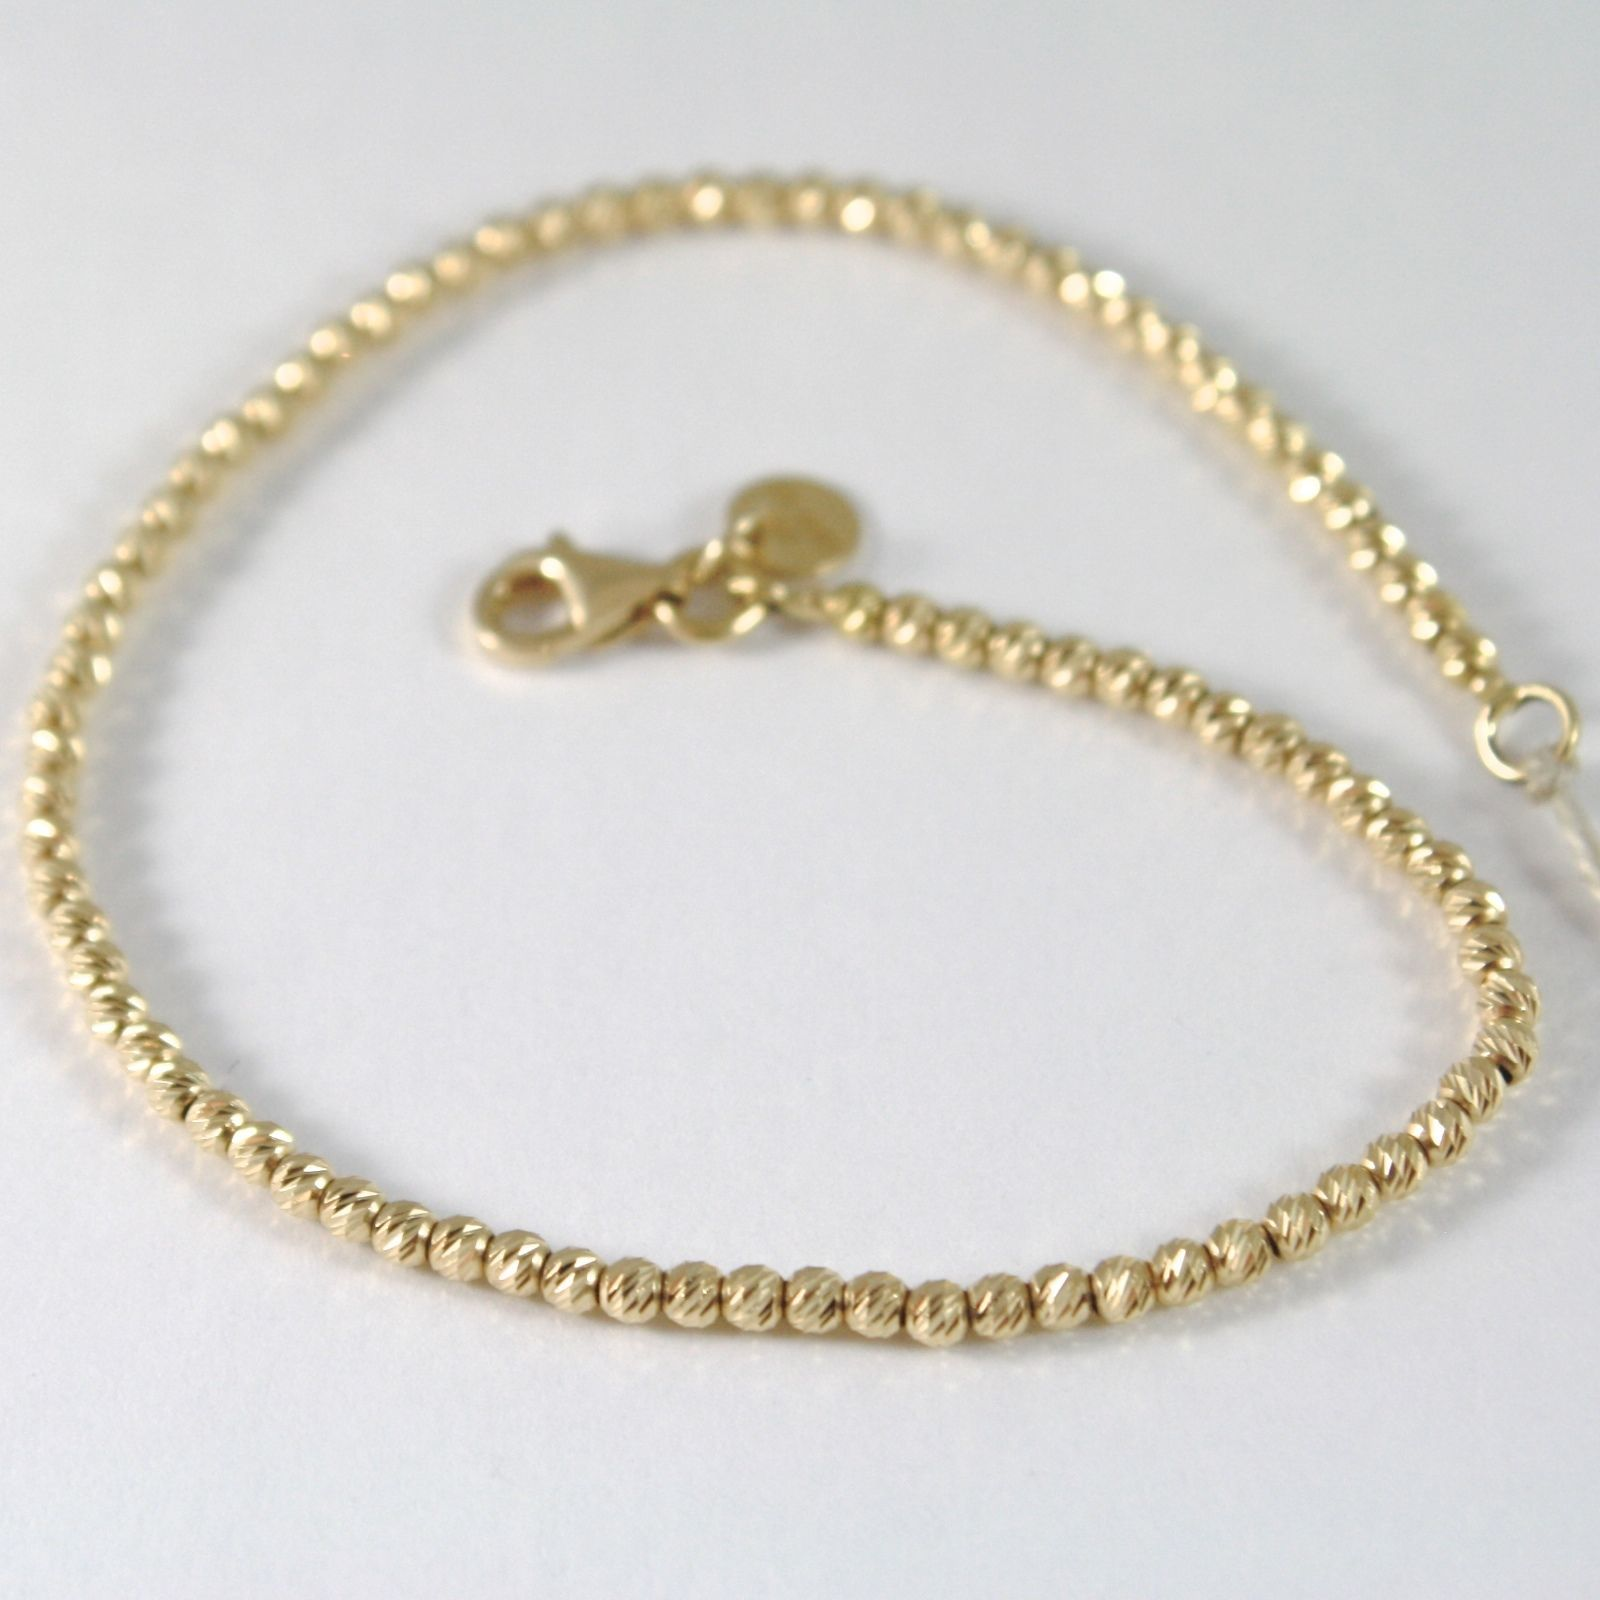 BRACELET YELLOW GOLD 750 18K WITH BEADS, SPHERES FACETED, 19 CM LENGTH